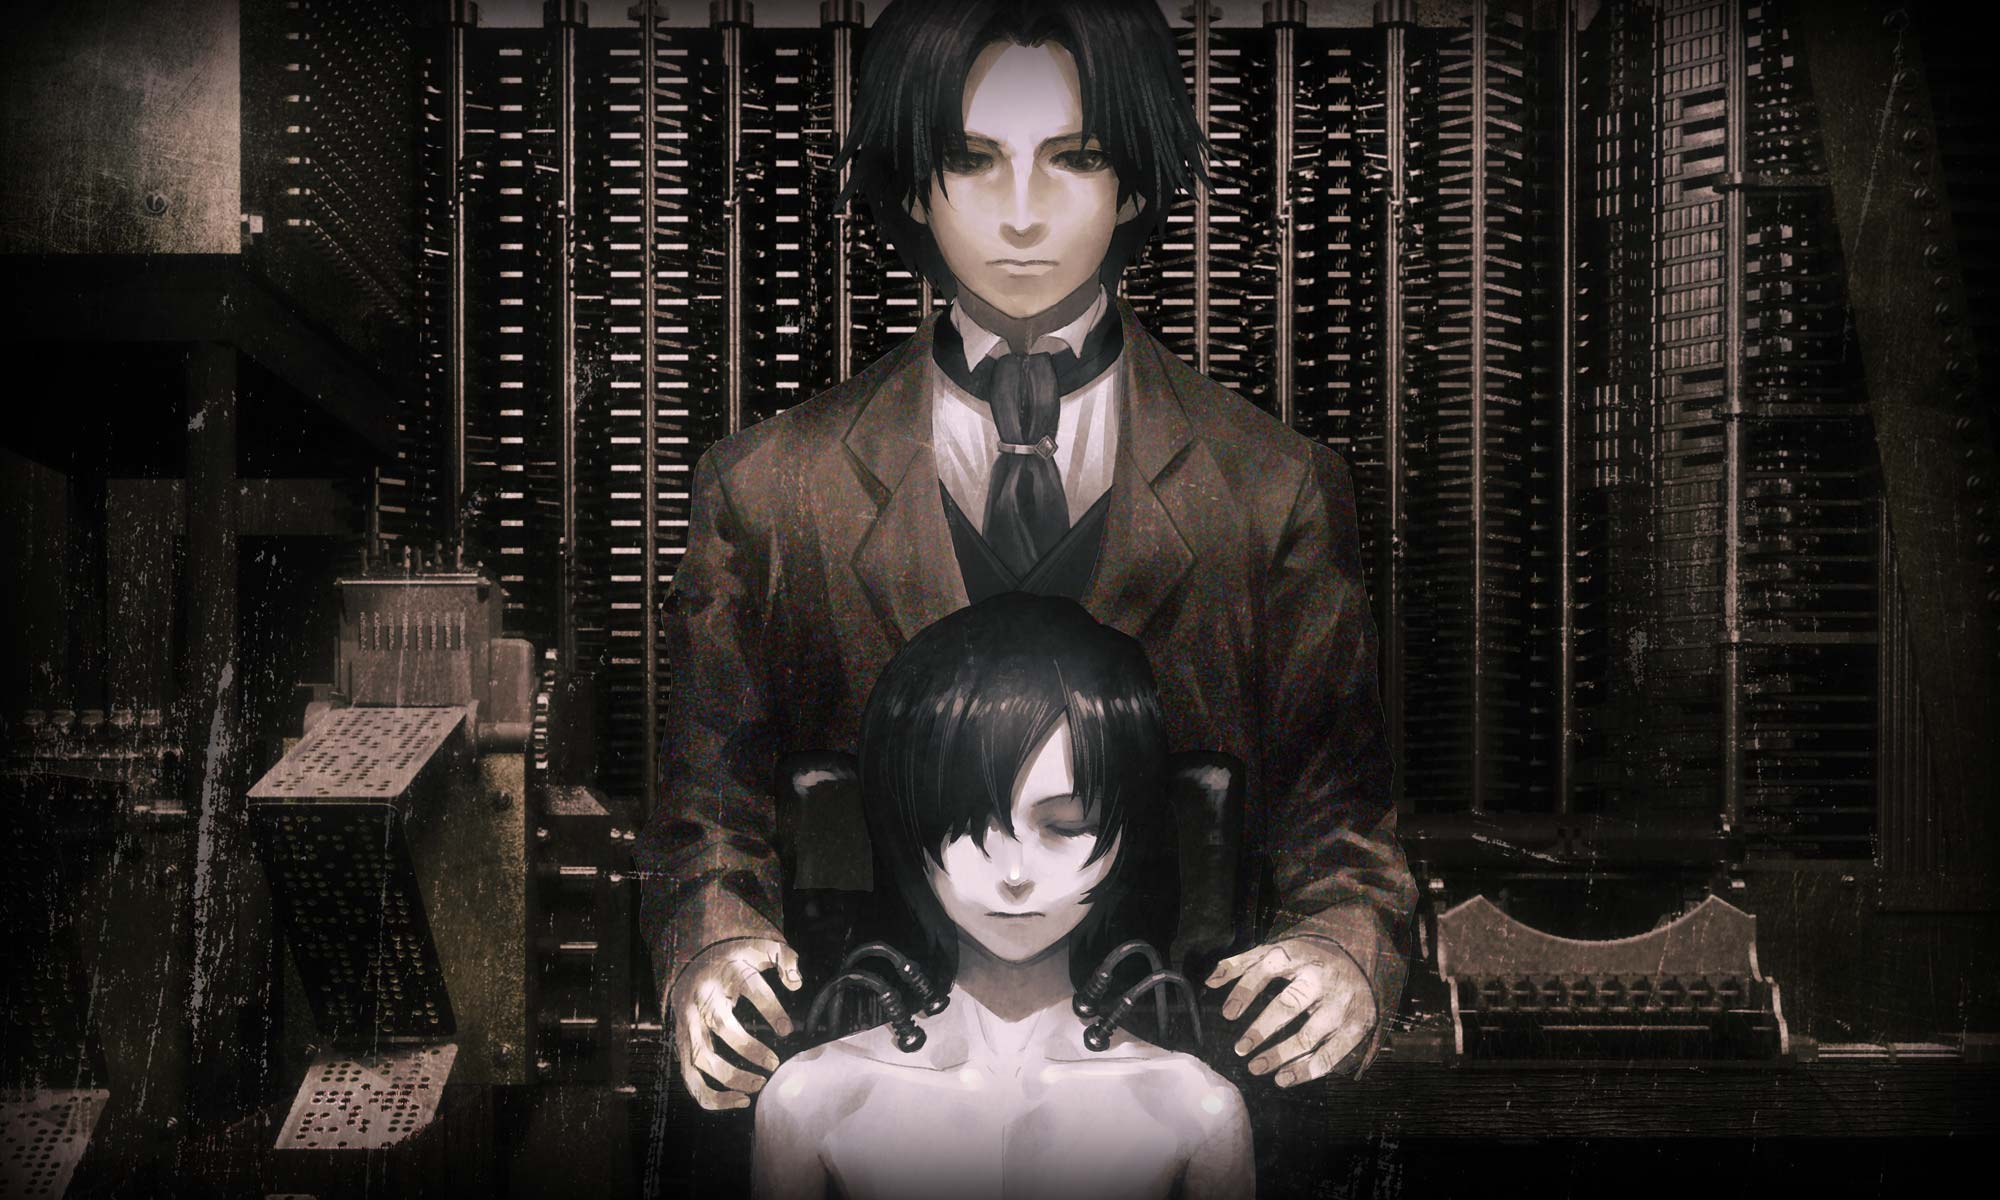 'The Empire of Corpses' Is Built on Gothic Chills and Historical Thrills [Anime Horrors]